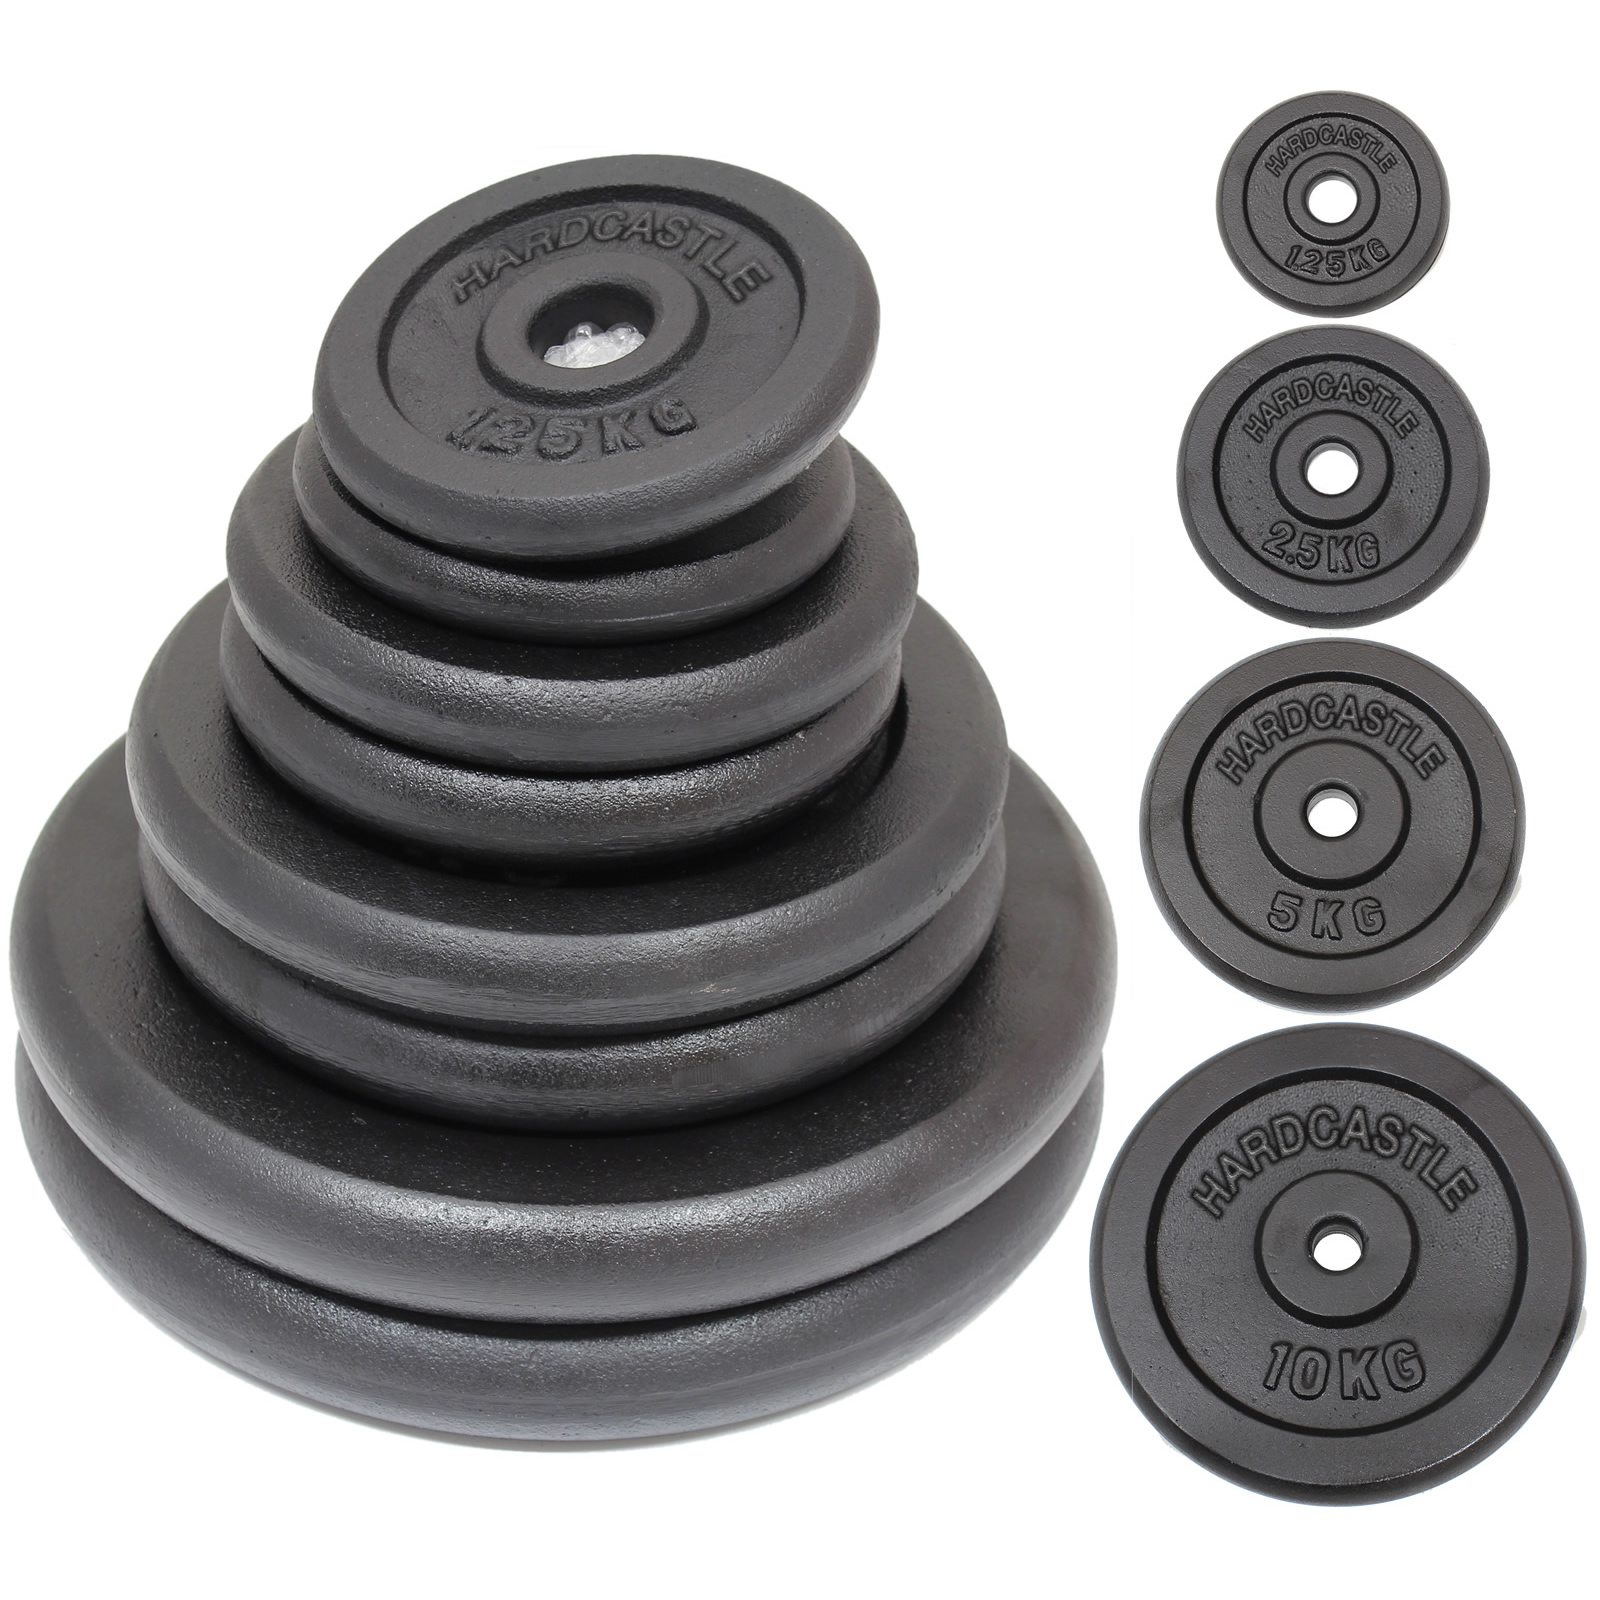 CAST-IRON-WEIGHTS-STANDARD-1-034-HOLE-HOME-GYM-WEIGHT-PLATES-DISCS-TRAINING-LIFTING thumbnail 15